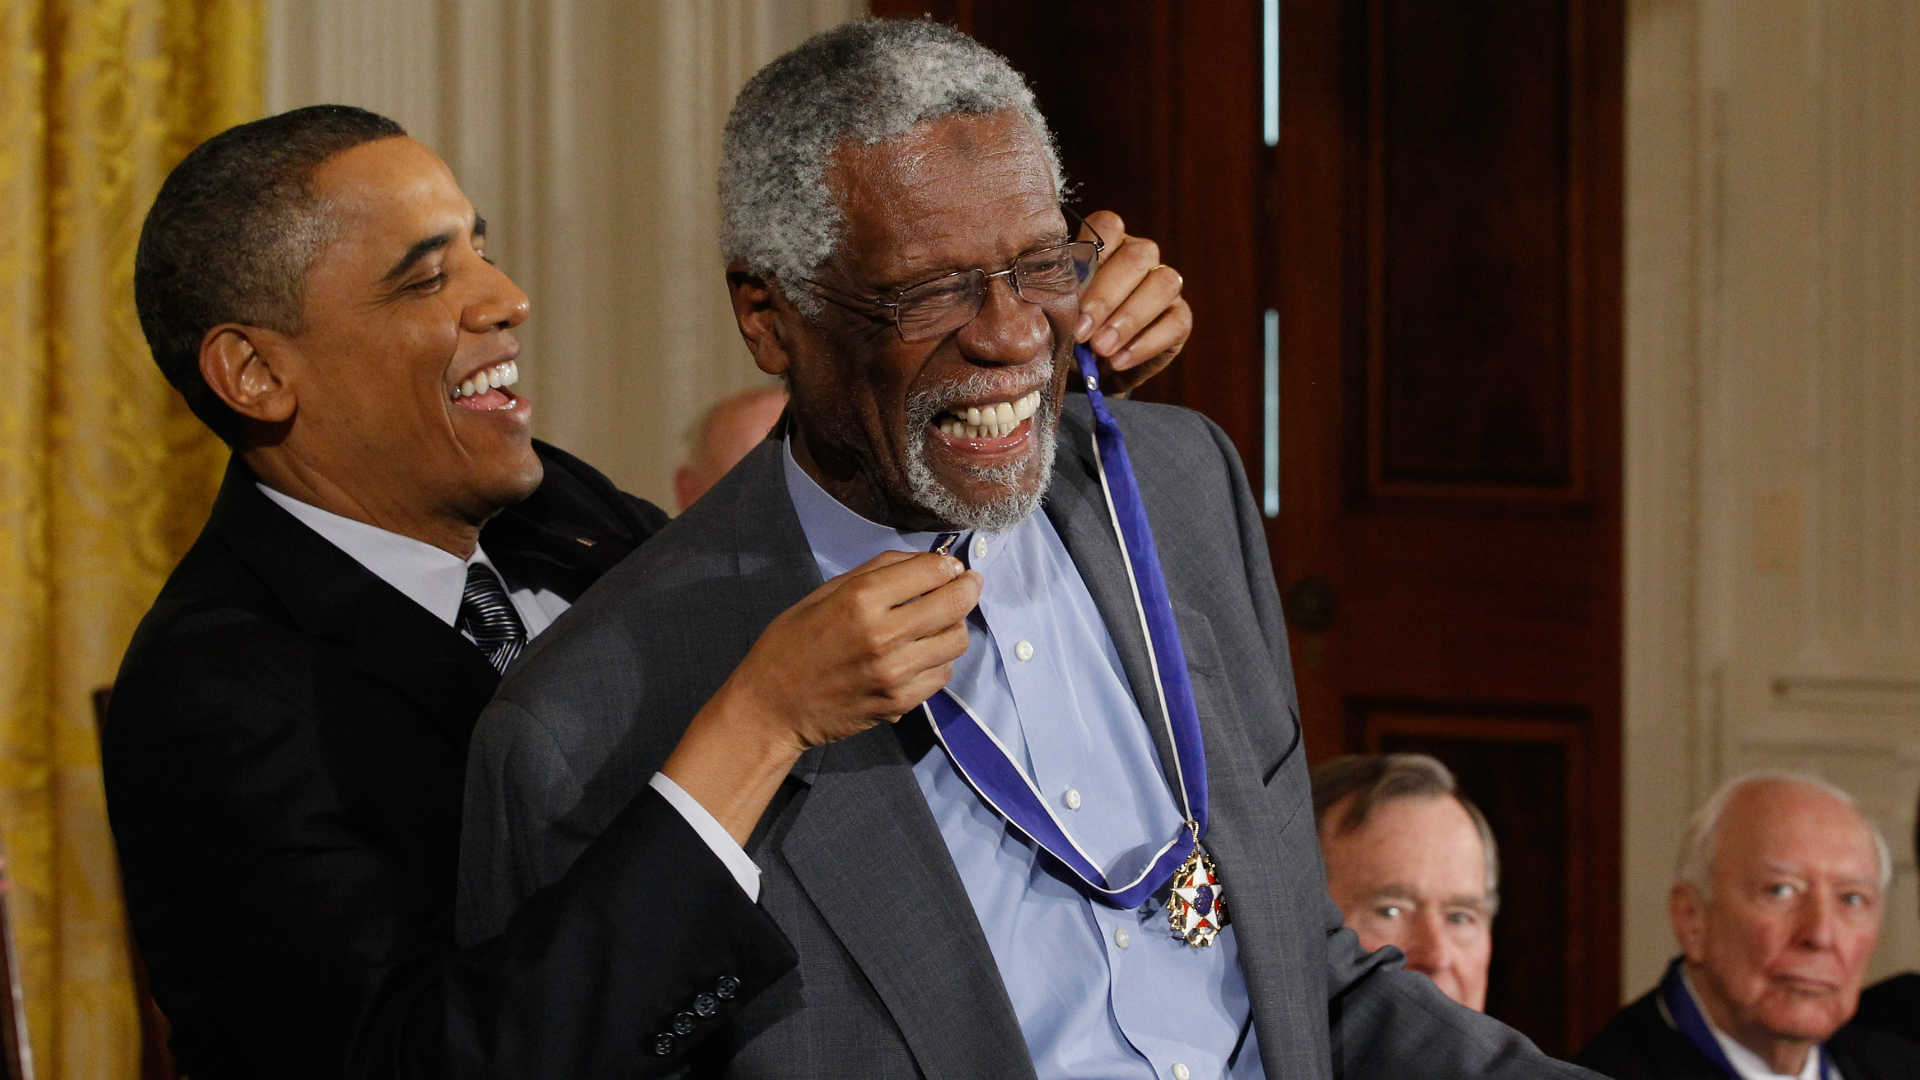 photo shows bill russell kneeling with presidential medal of freedom